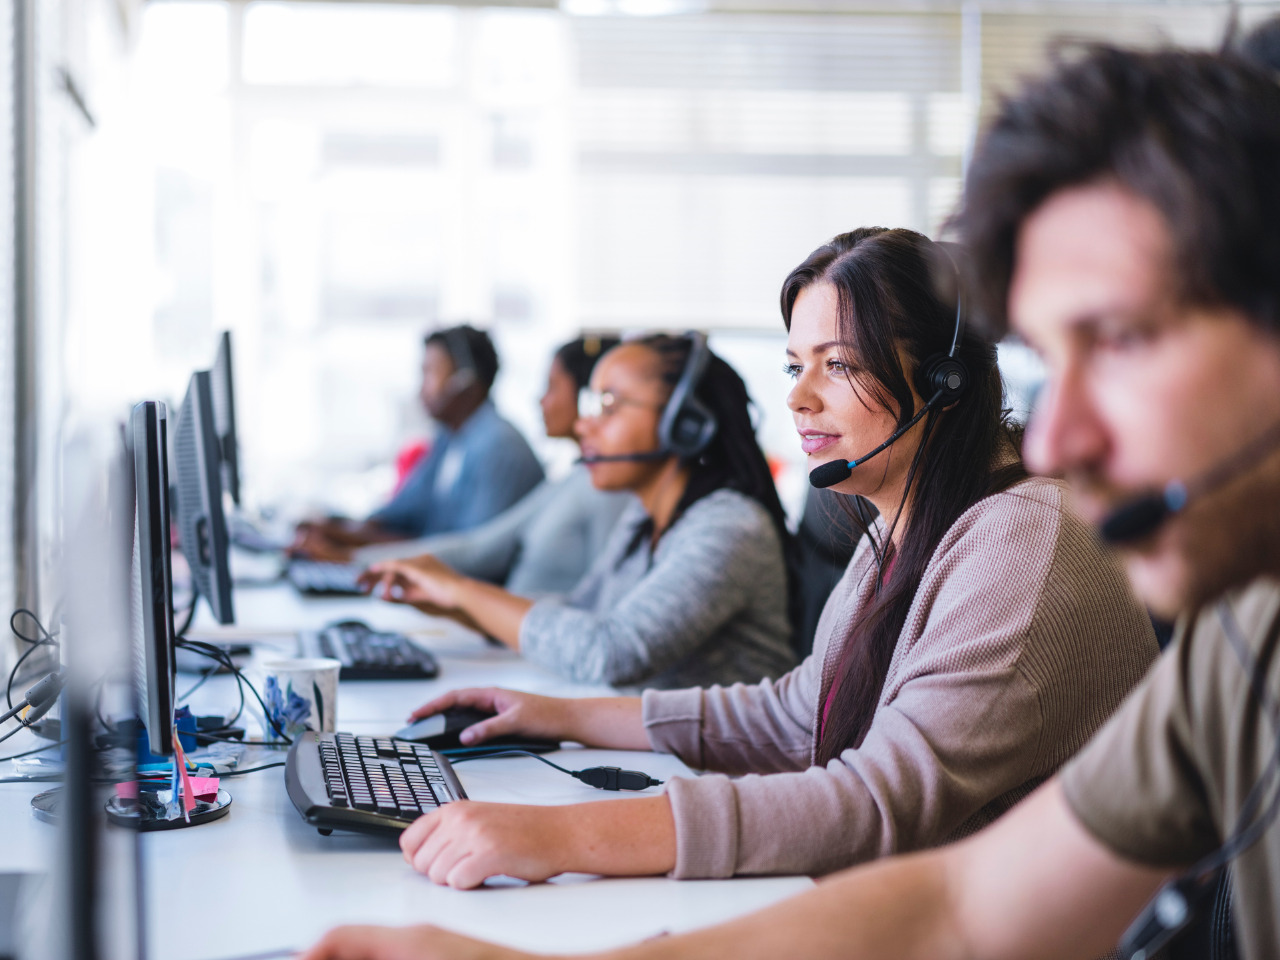 How to find a Great Technical Support Company